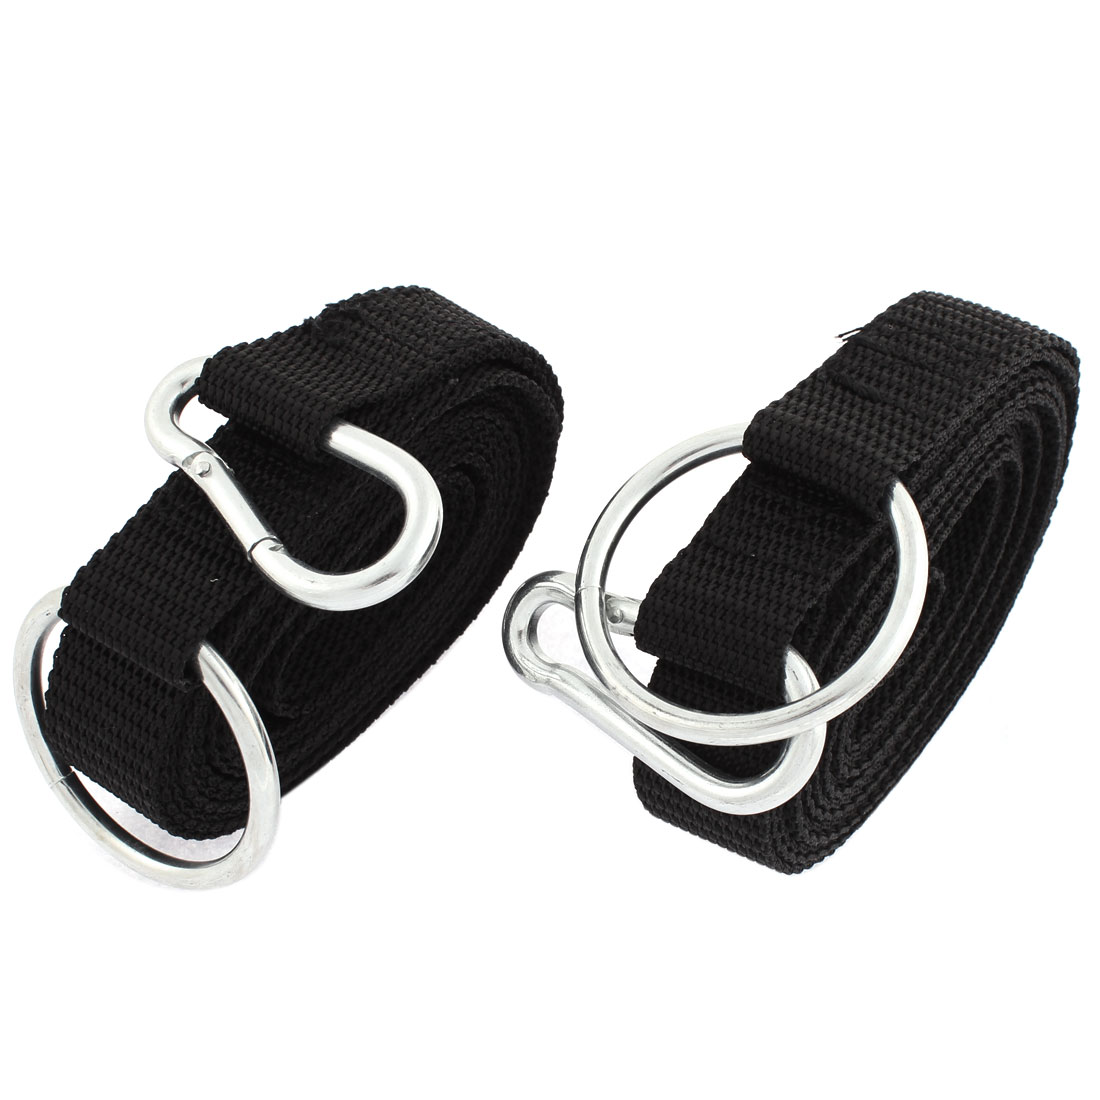 2 Pcs Metal Carabiner Hook Clip Ring Black Nylon Hanging Hammock Strap Safety Belt Band 250cm x 2.5cm